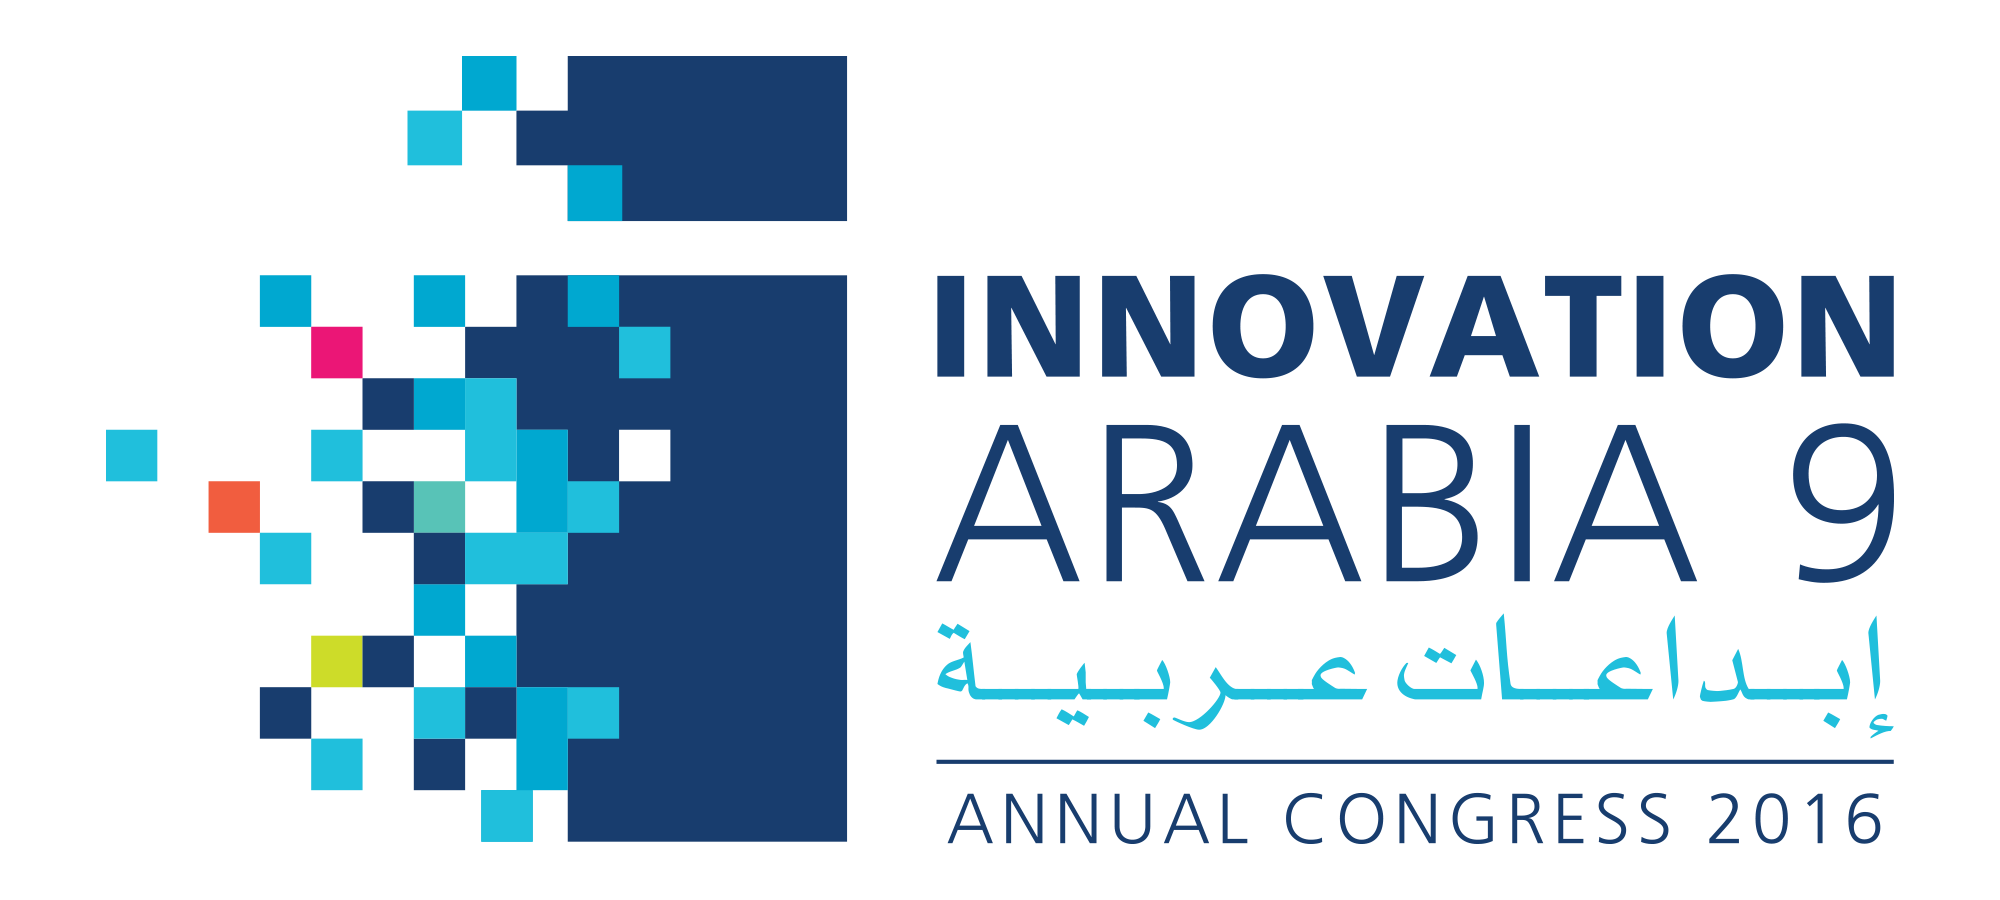 Innovation Arabia 9